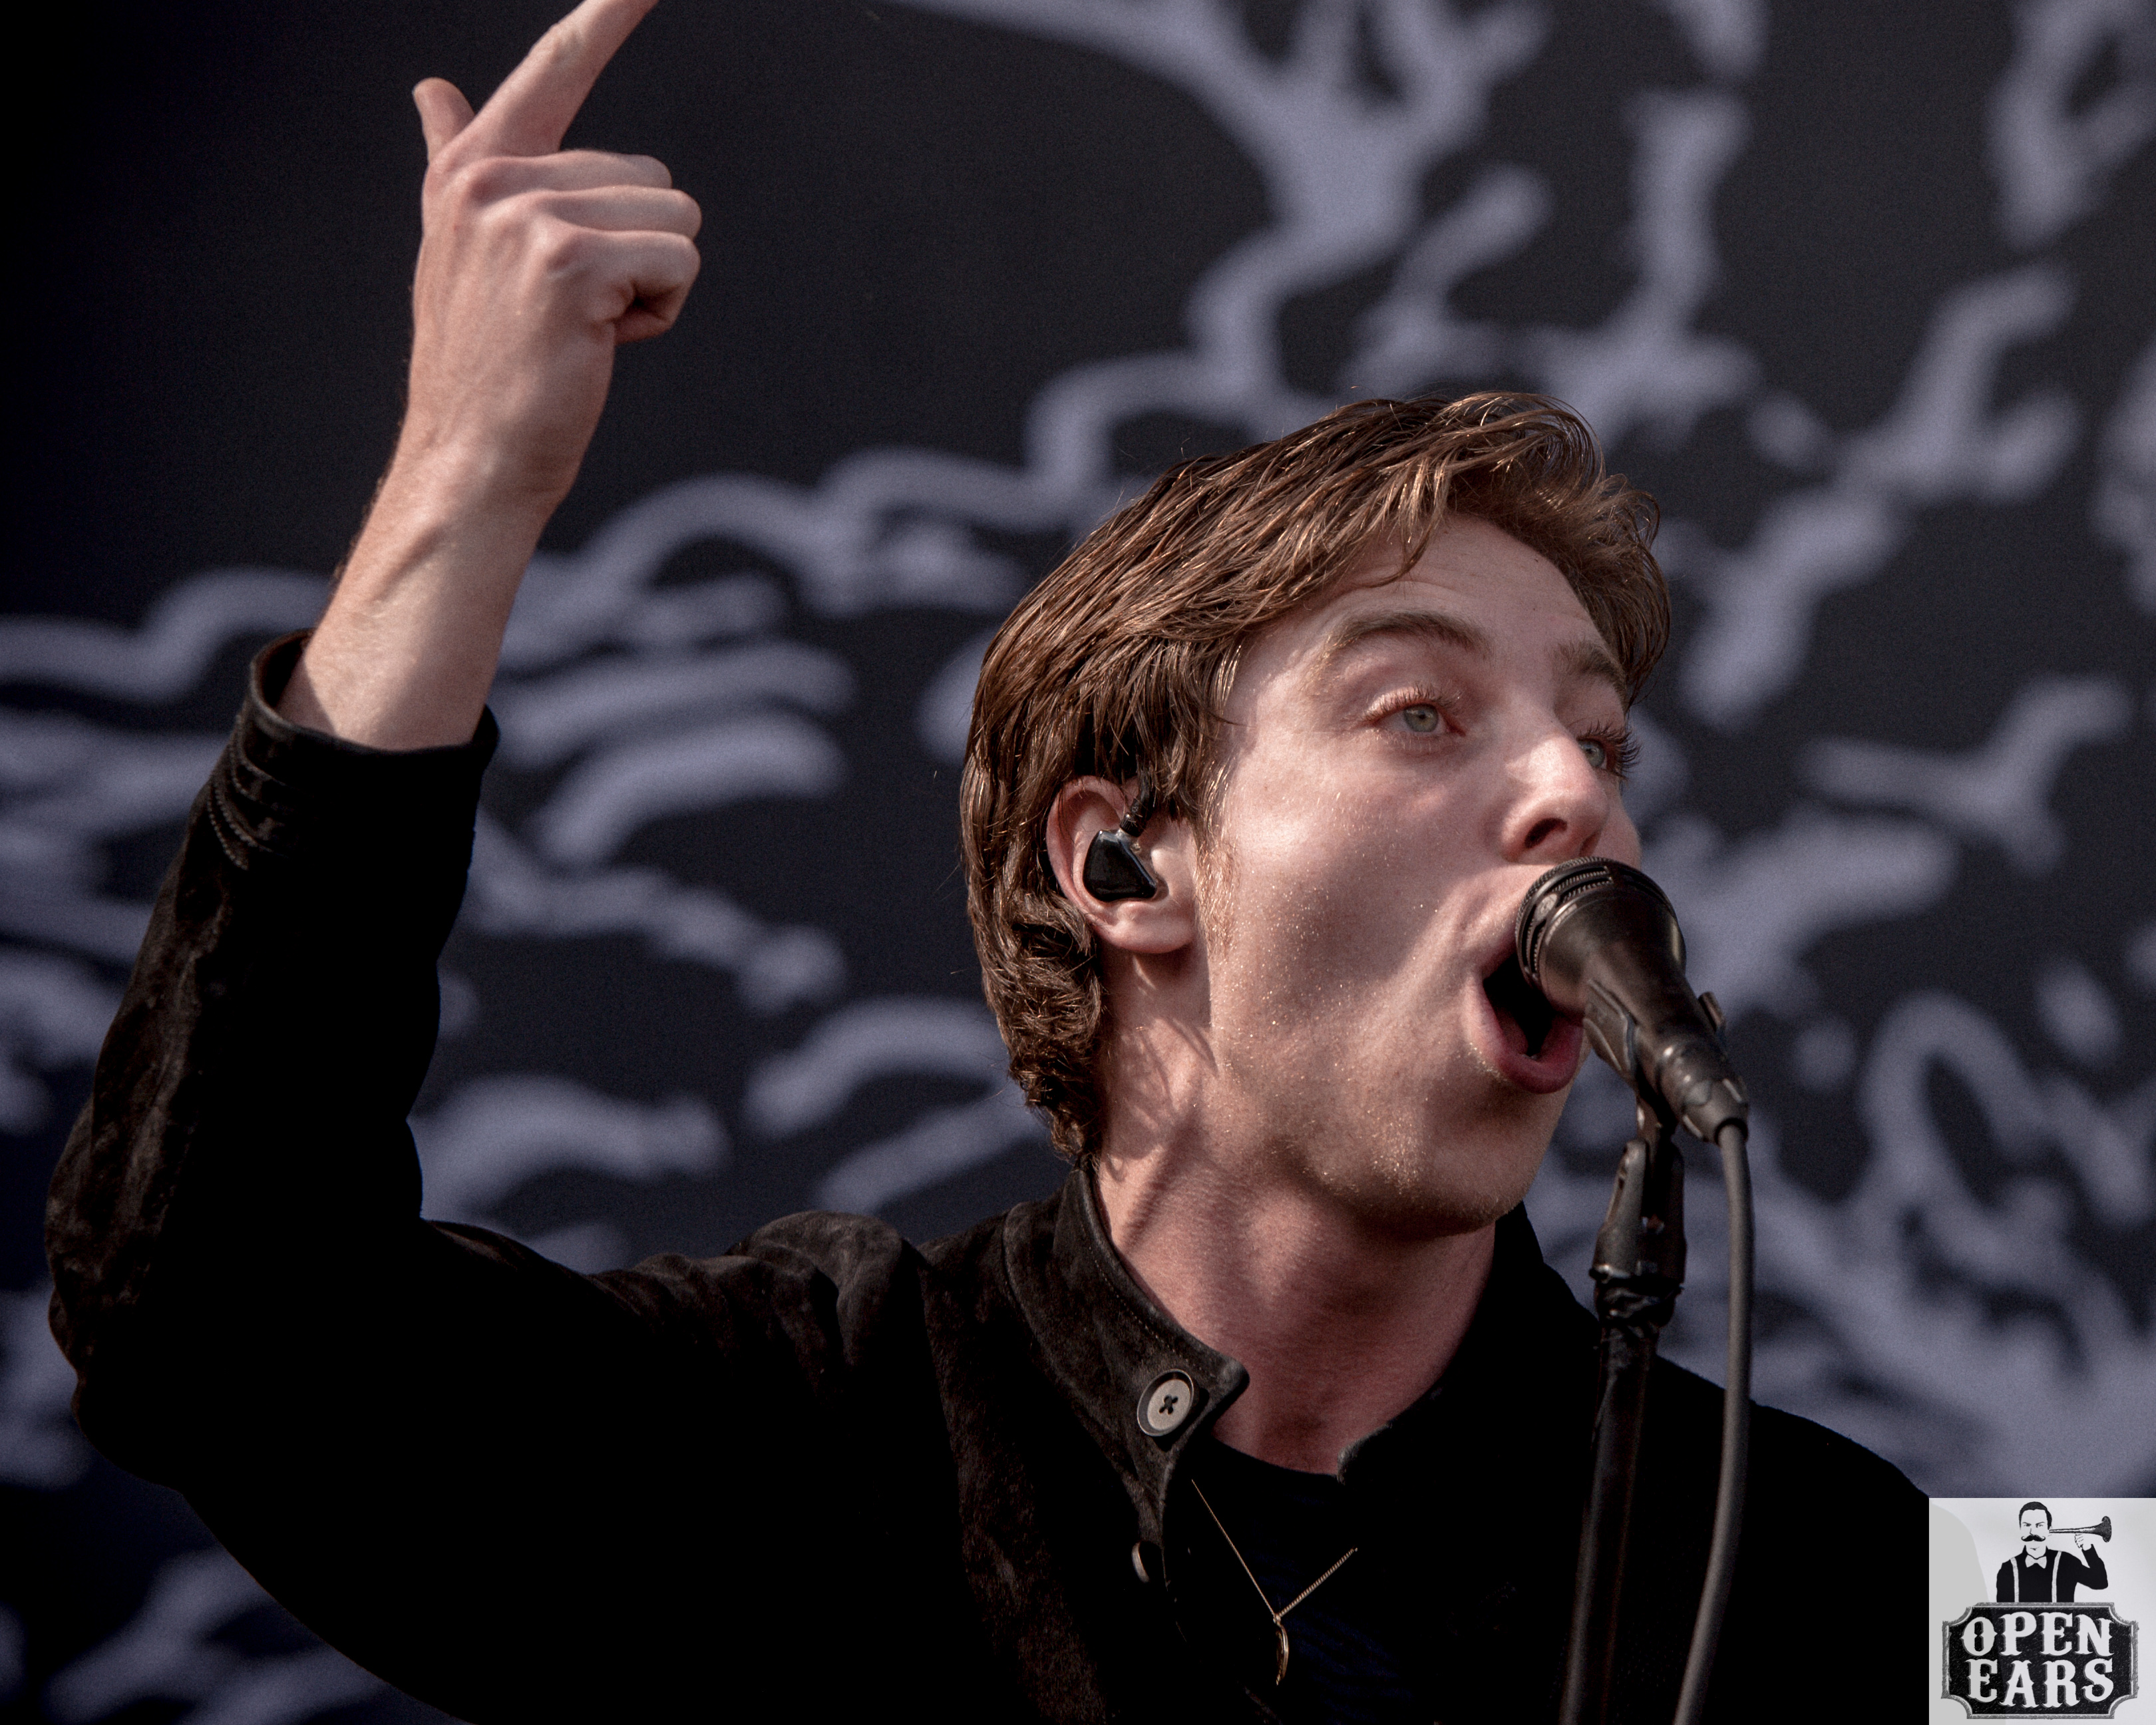 Catfish and the Bottlemen @ Shaky Knees 2017 Day 2. Photo by Mike Gerry